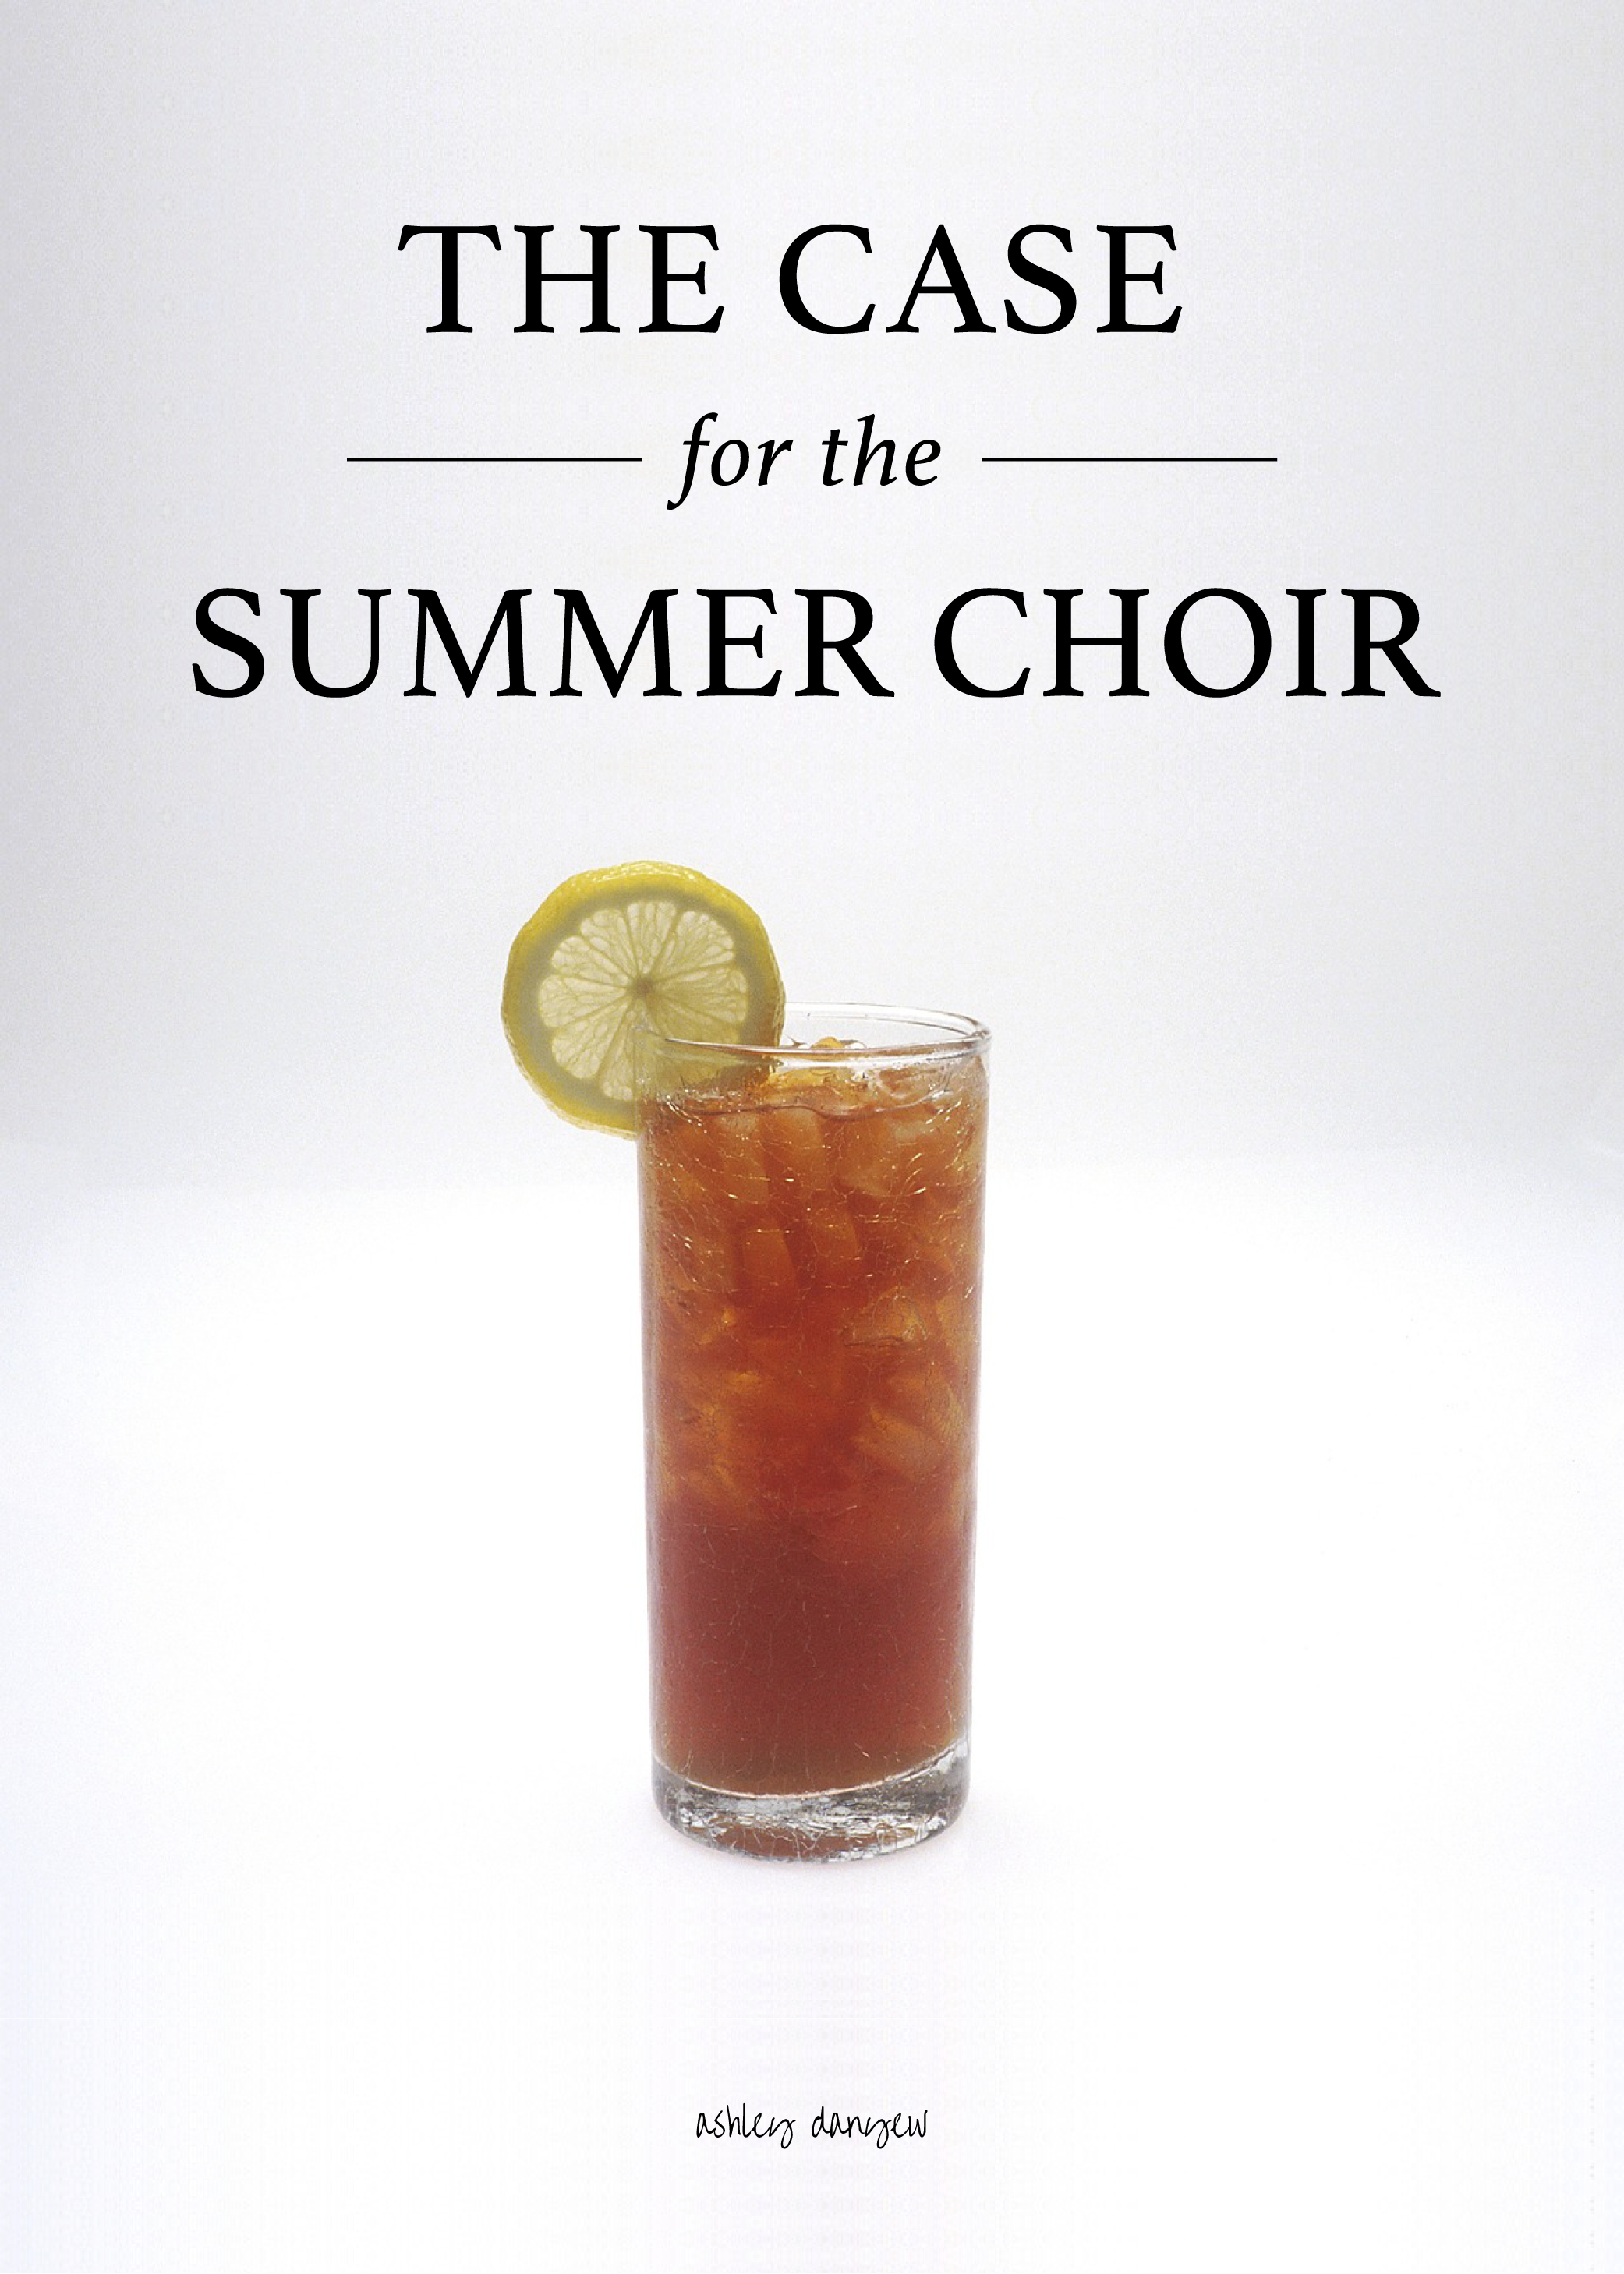 The-Case-for-the-Summer-Choir-01.png